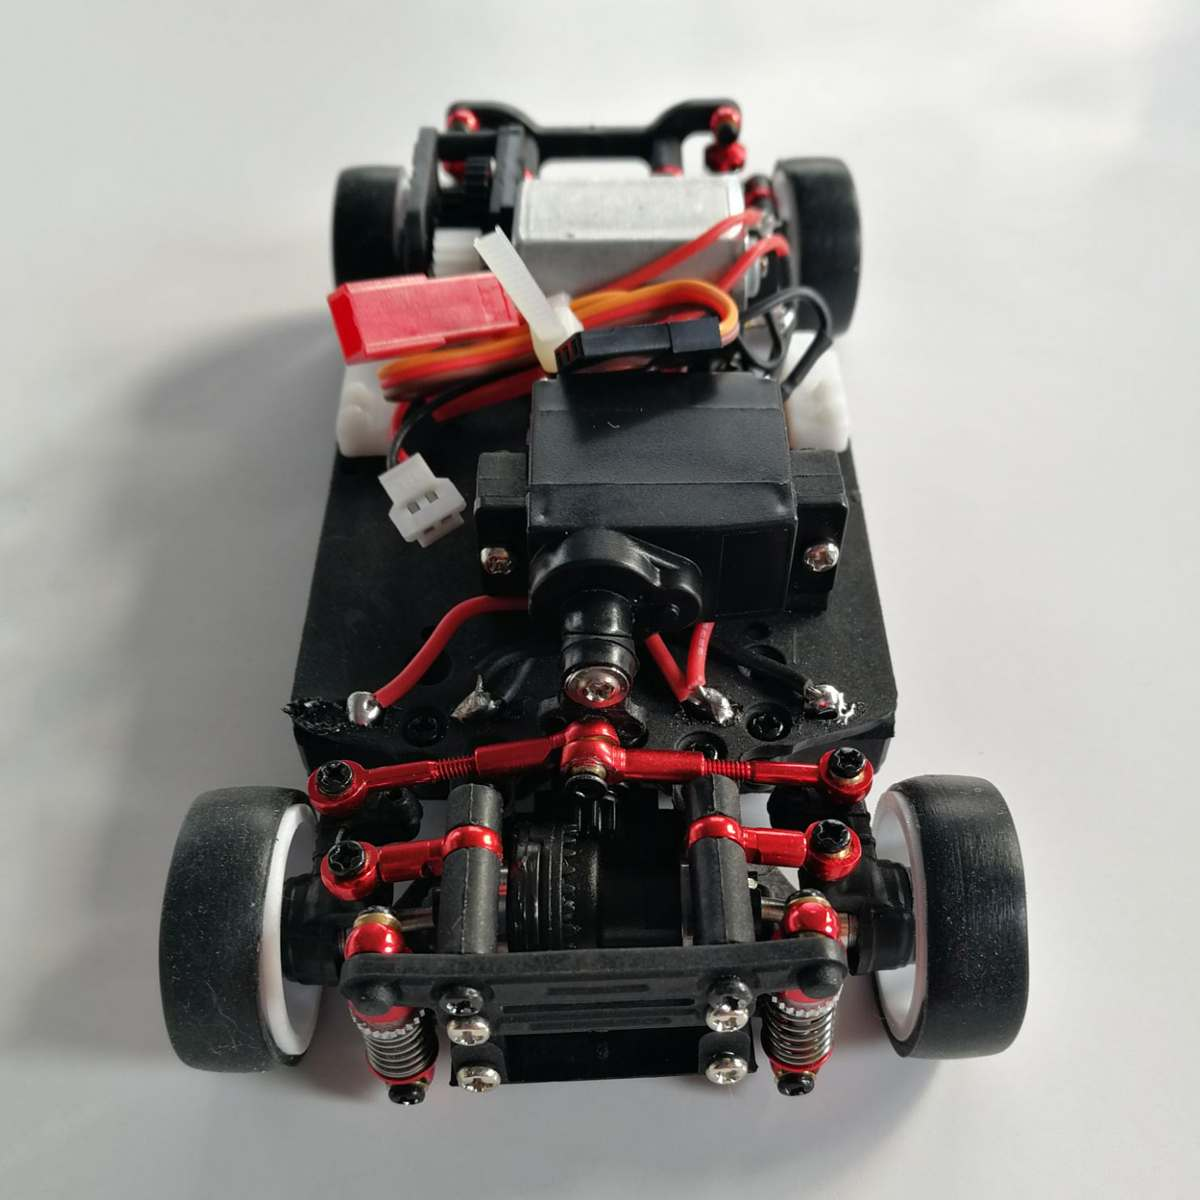 1:28 IW05 4WD Drift Meatl RC Racing Car Drive Shft Frame Kit Chassis Trauck Body Parts Accessories Remote Control Toys